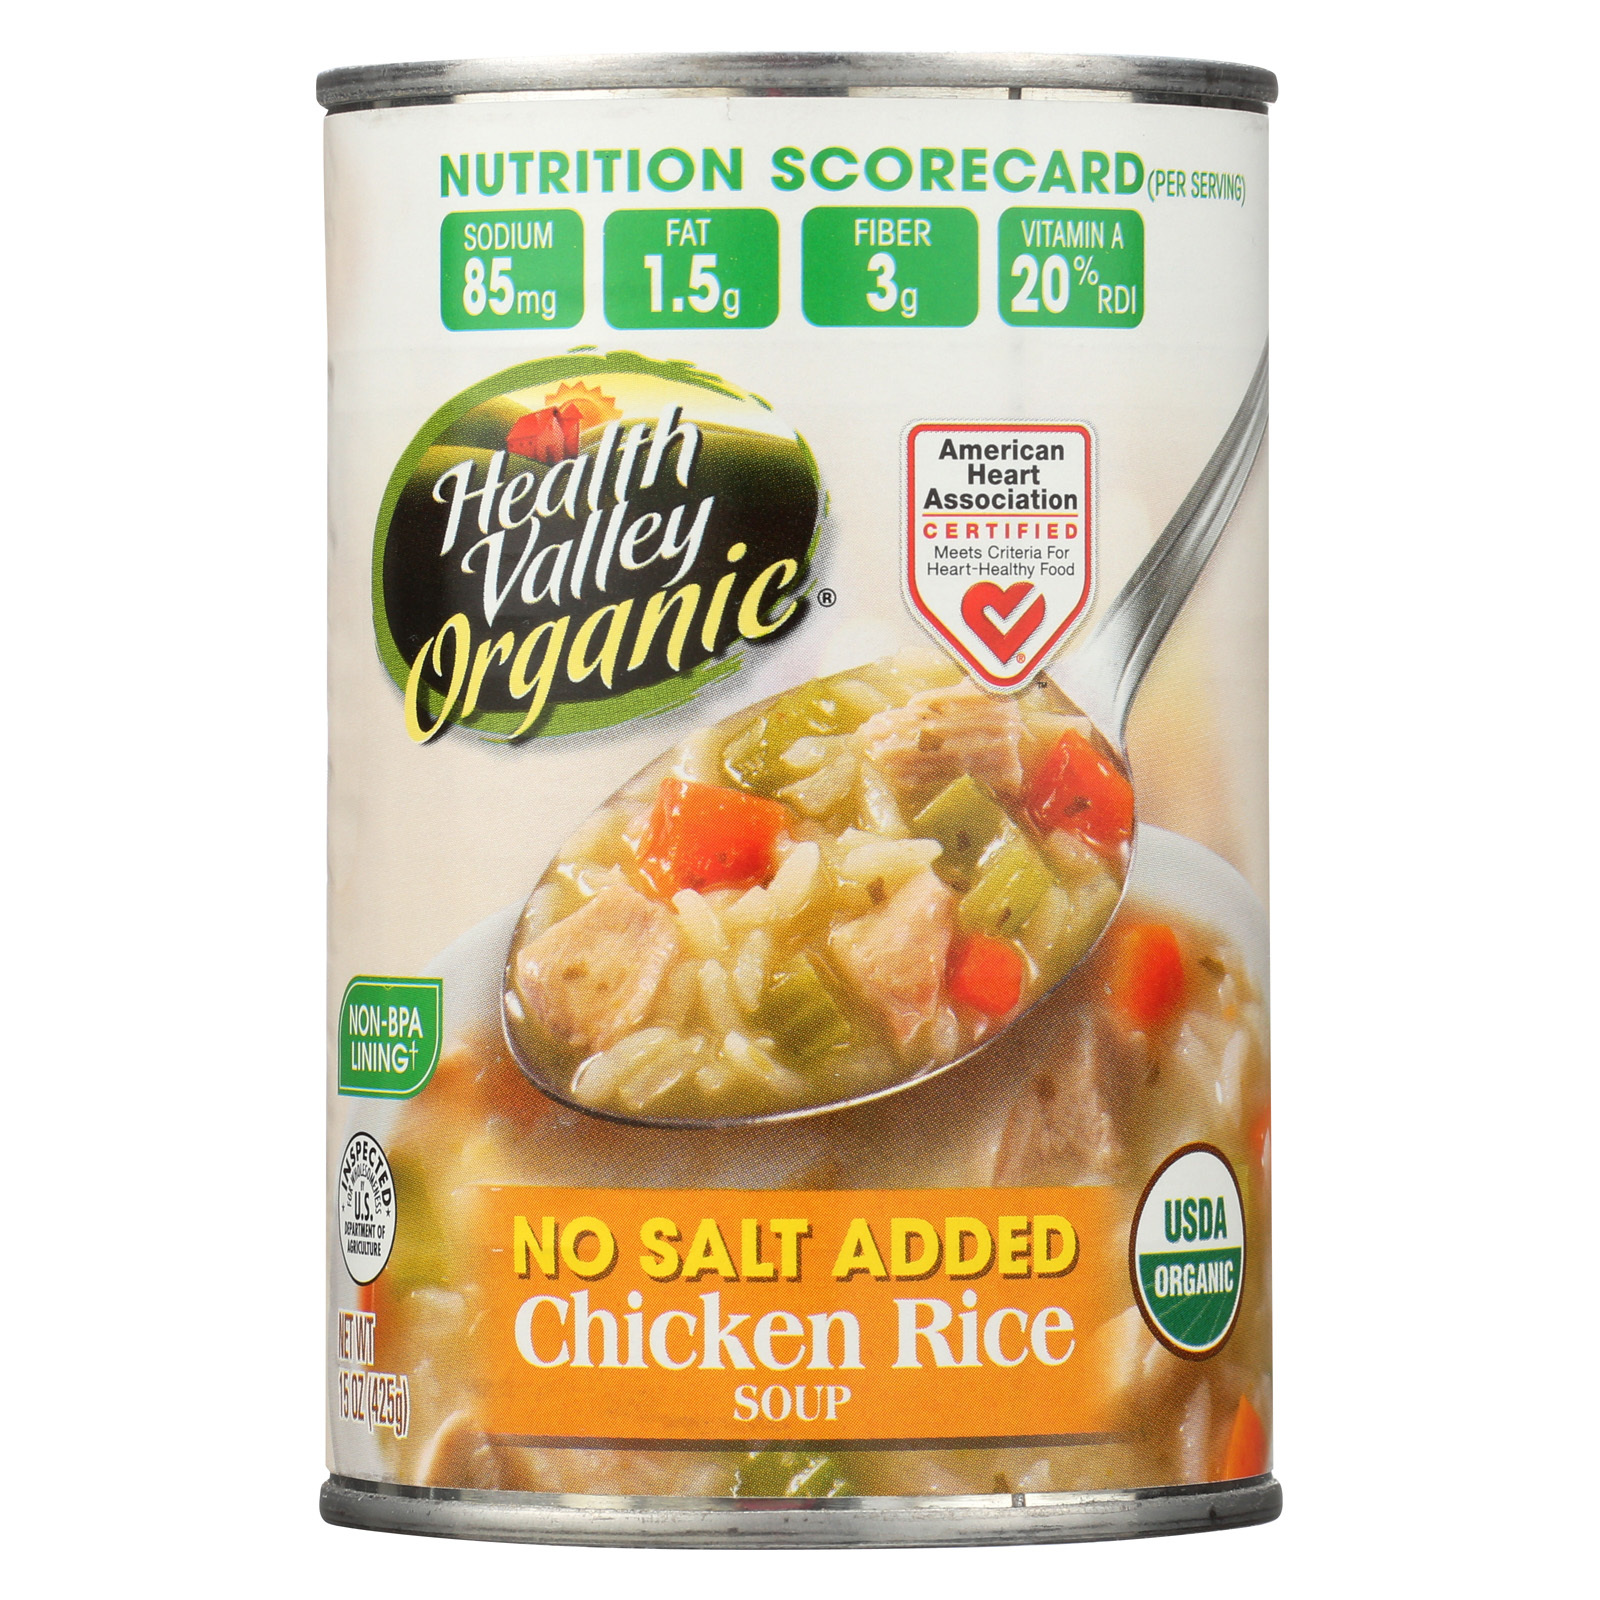 Health Valley Organic Soup - Chicken Rice, No Salt Added - Case of 12 - 15 oz.